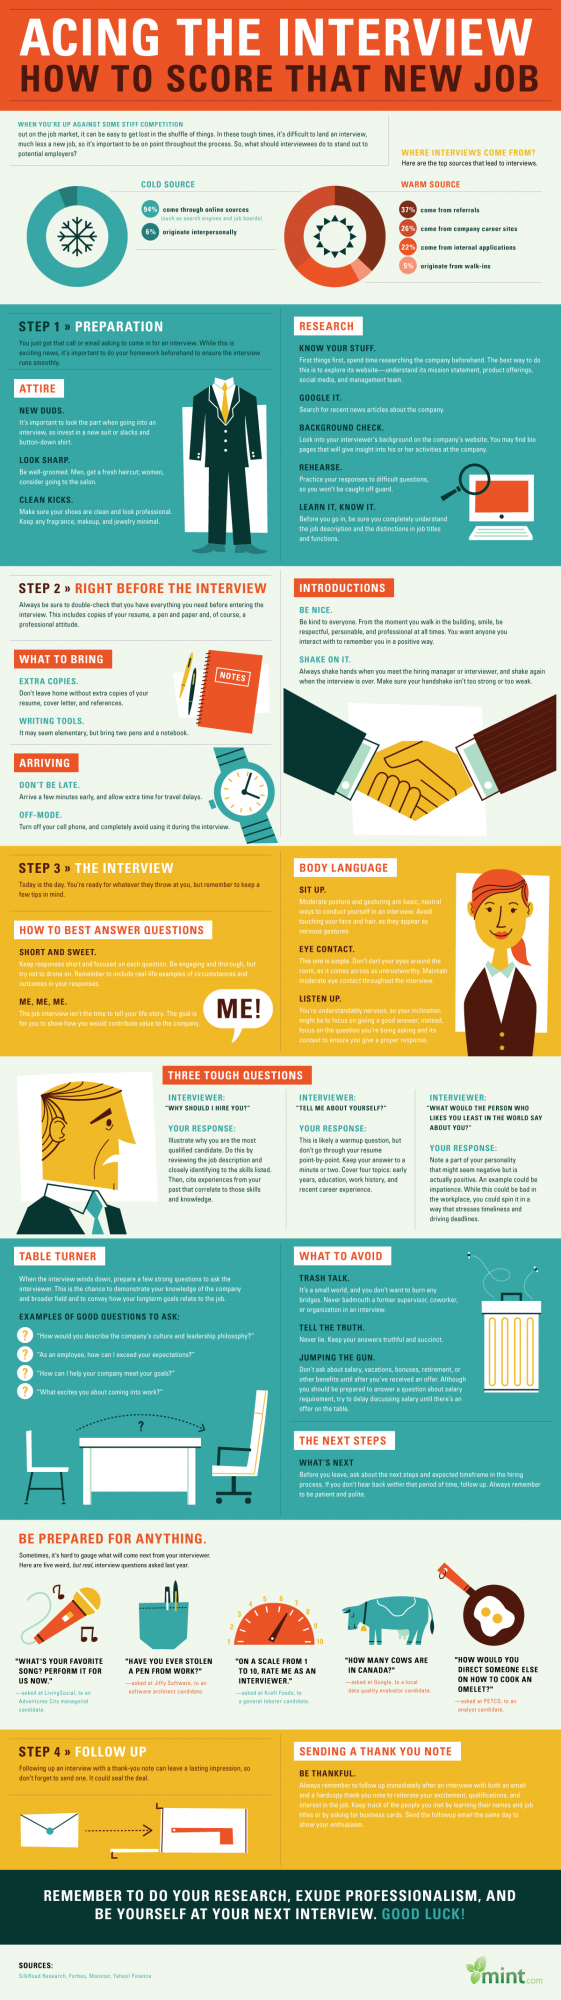 How To Score That New Job Interview